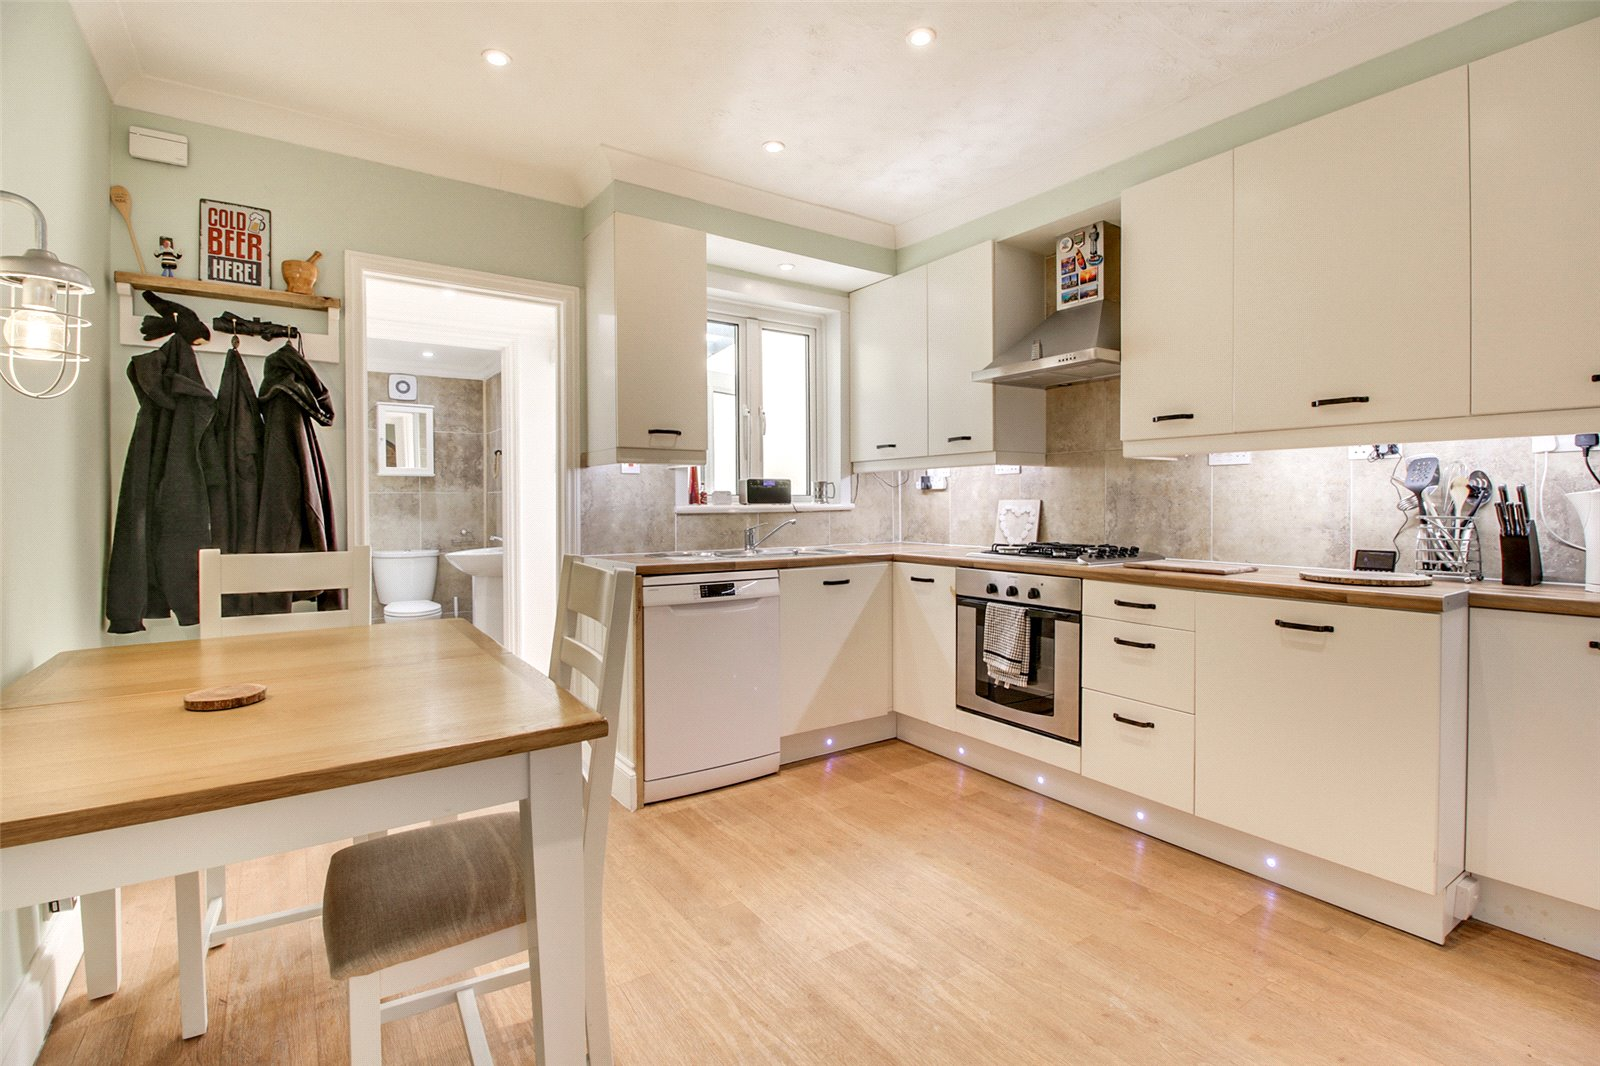 2 bed house for sale in Gladstone Road, Penenden Heath, ME14